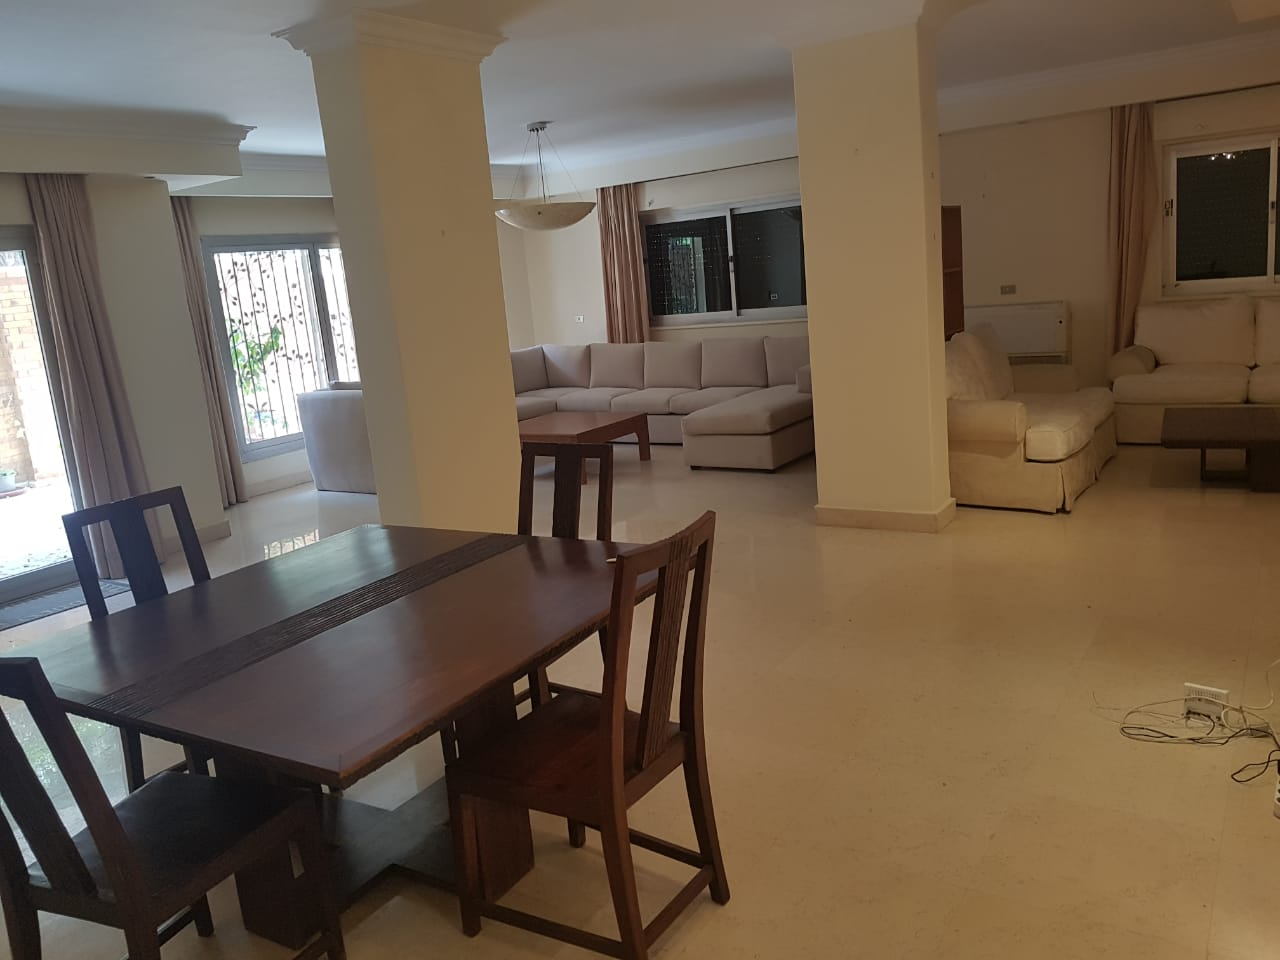 Ground Floors For Rent In Maadi Maadi Sarayat -#16